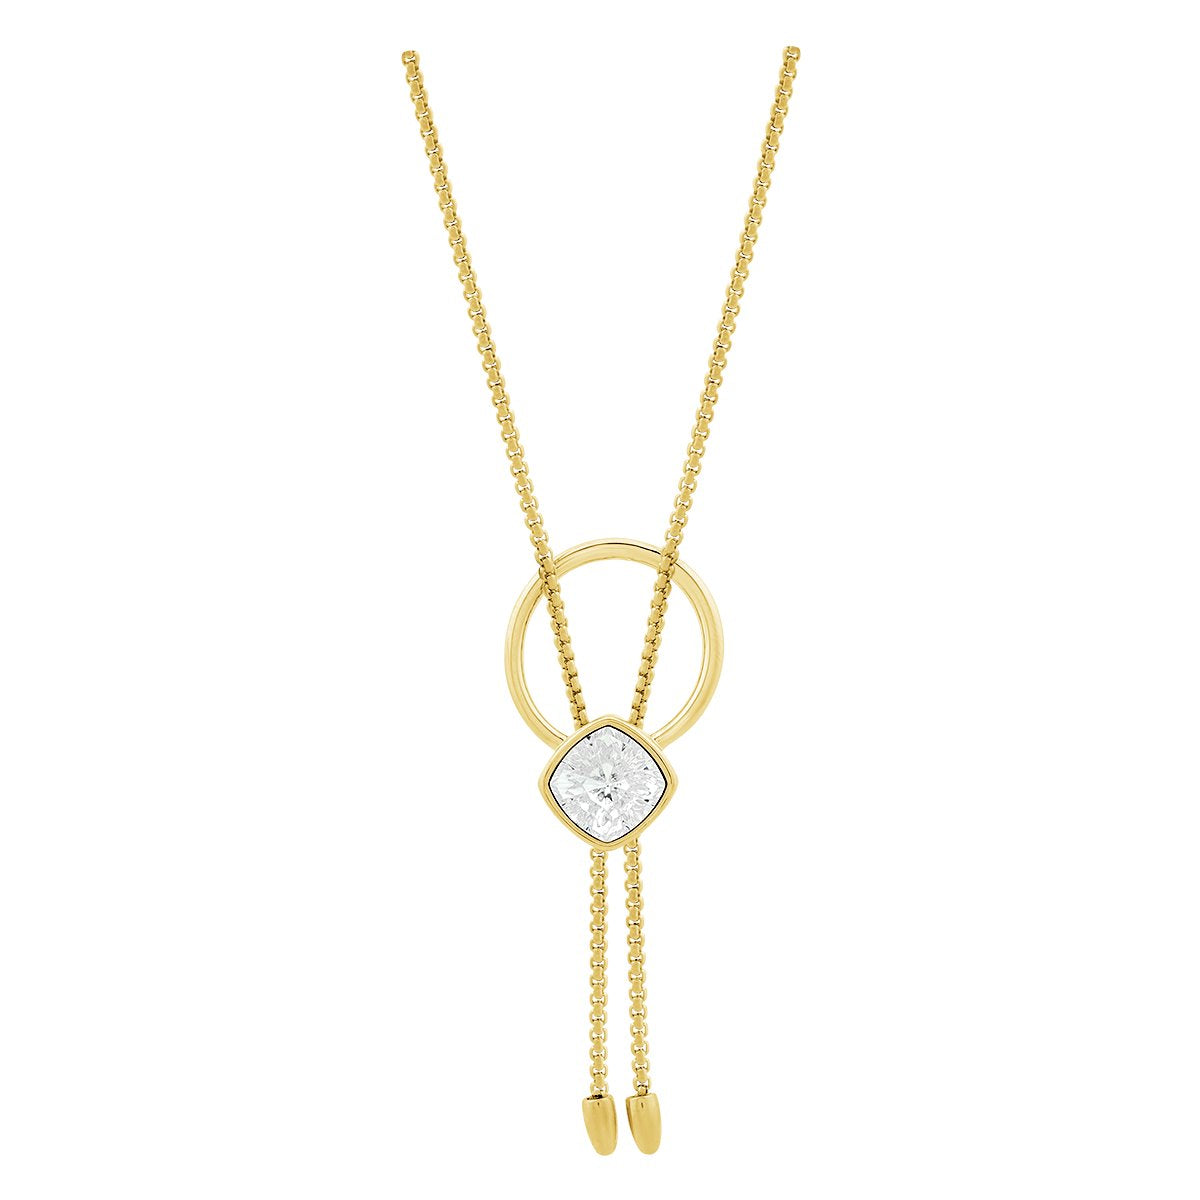 Louvre Necklace Gold Crystal JOY OF SPARKLE FOREVER CRYSTALS